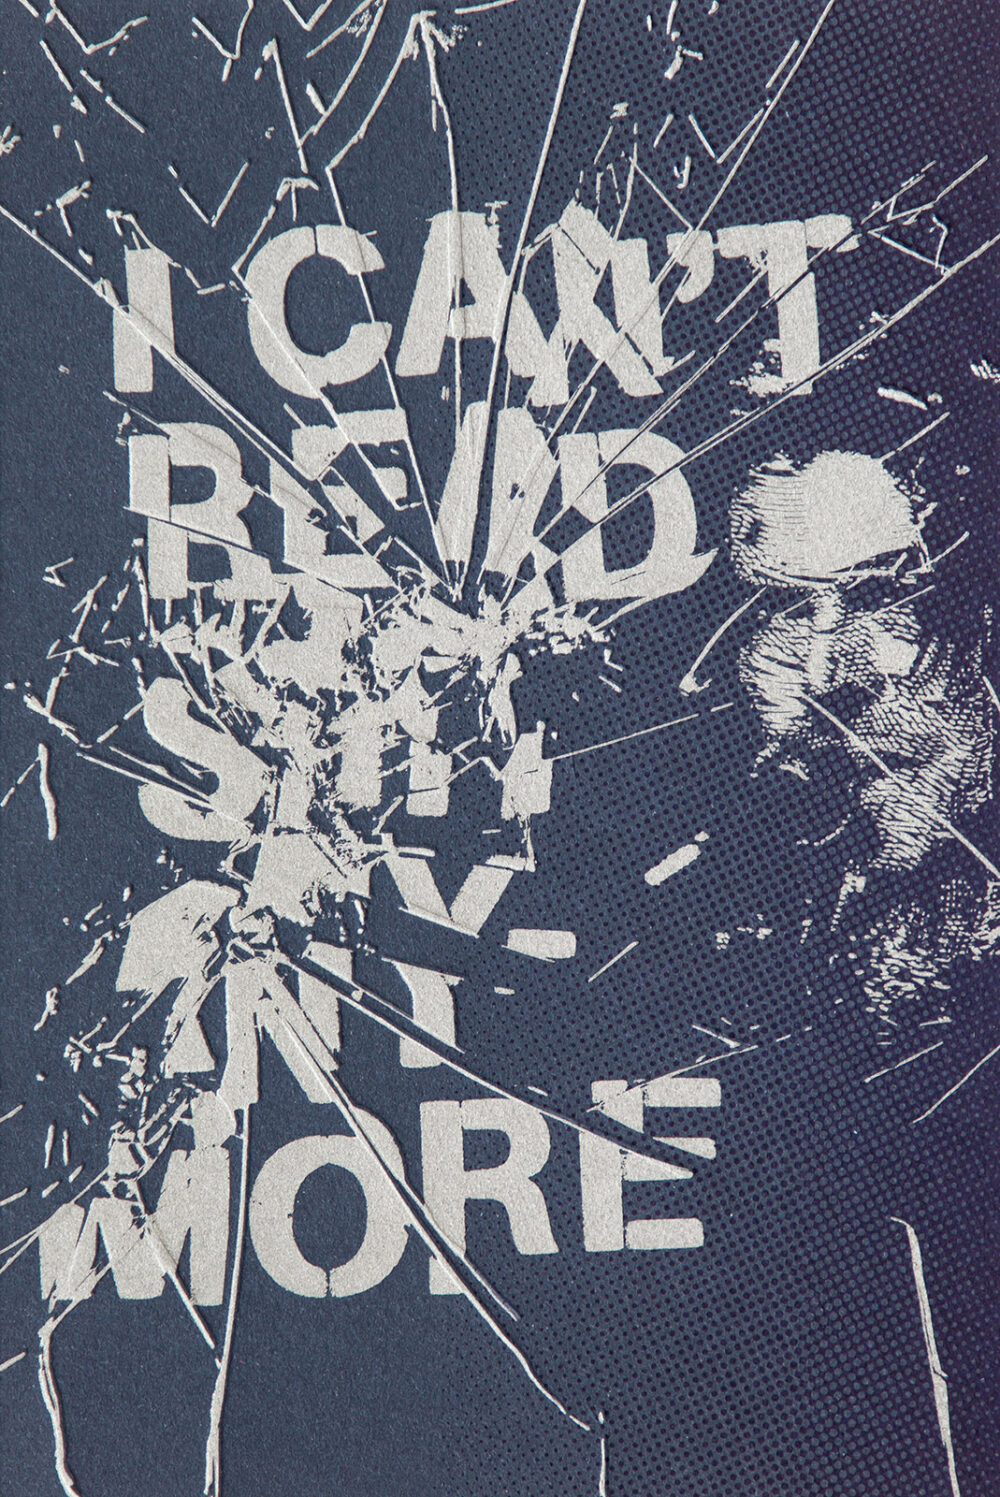 I CAN'T READ - Letterpress Art Print